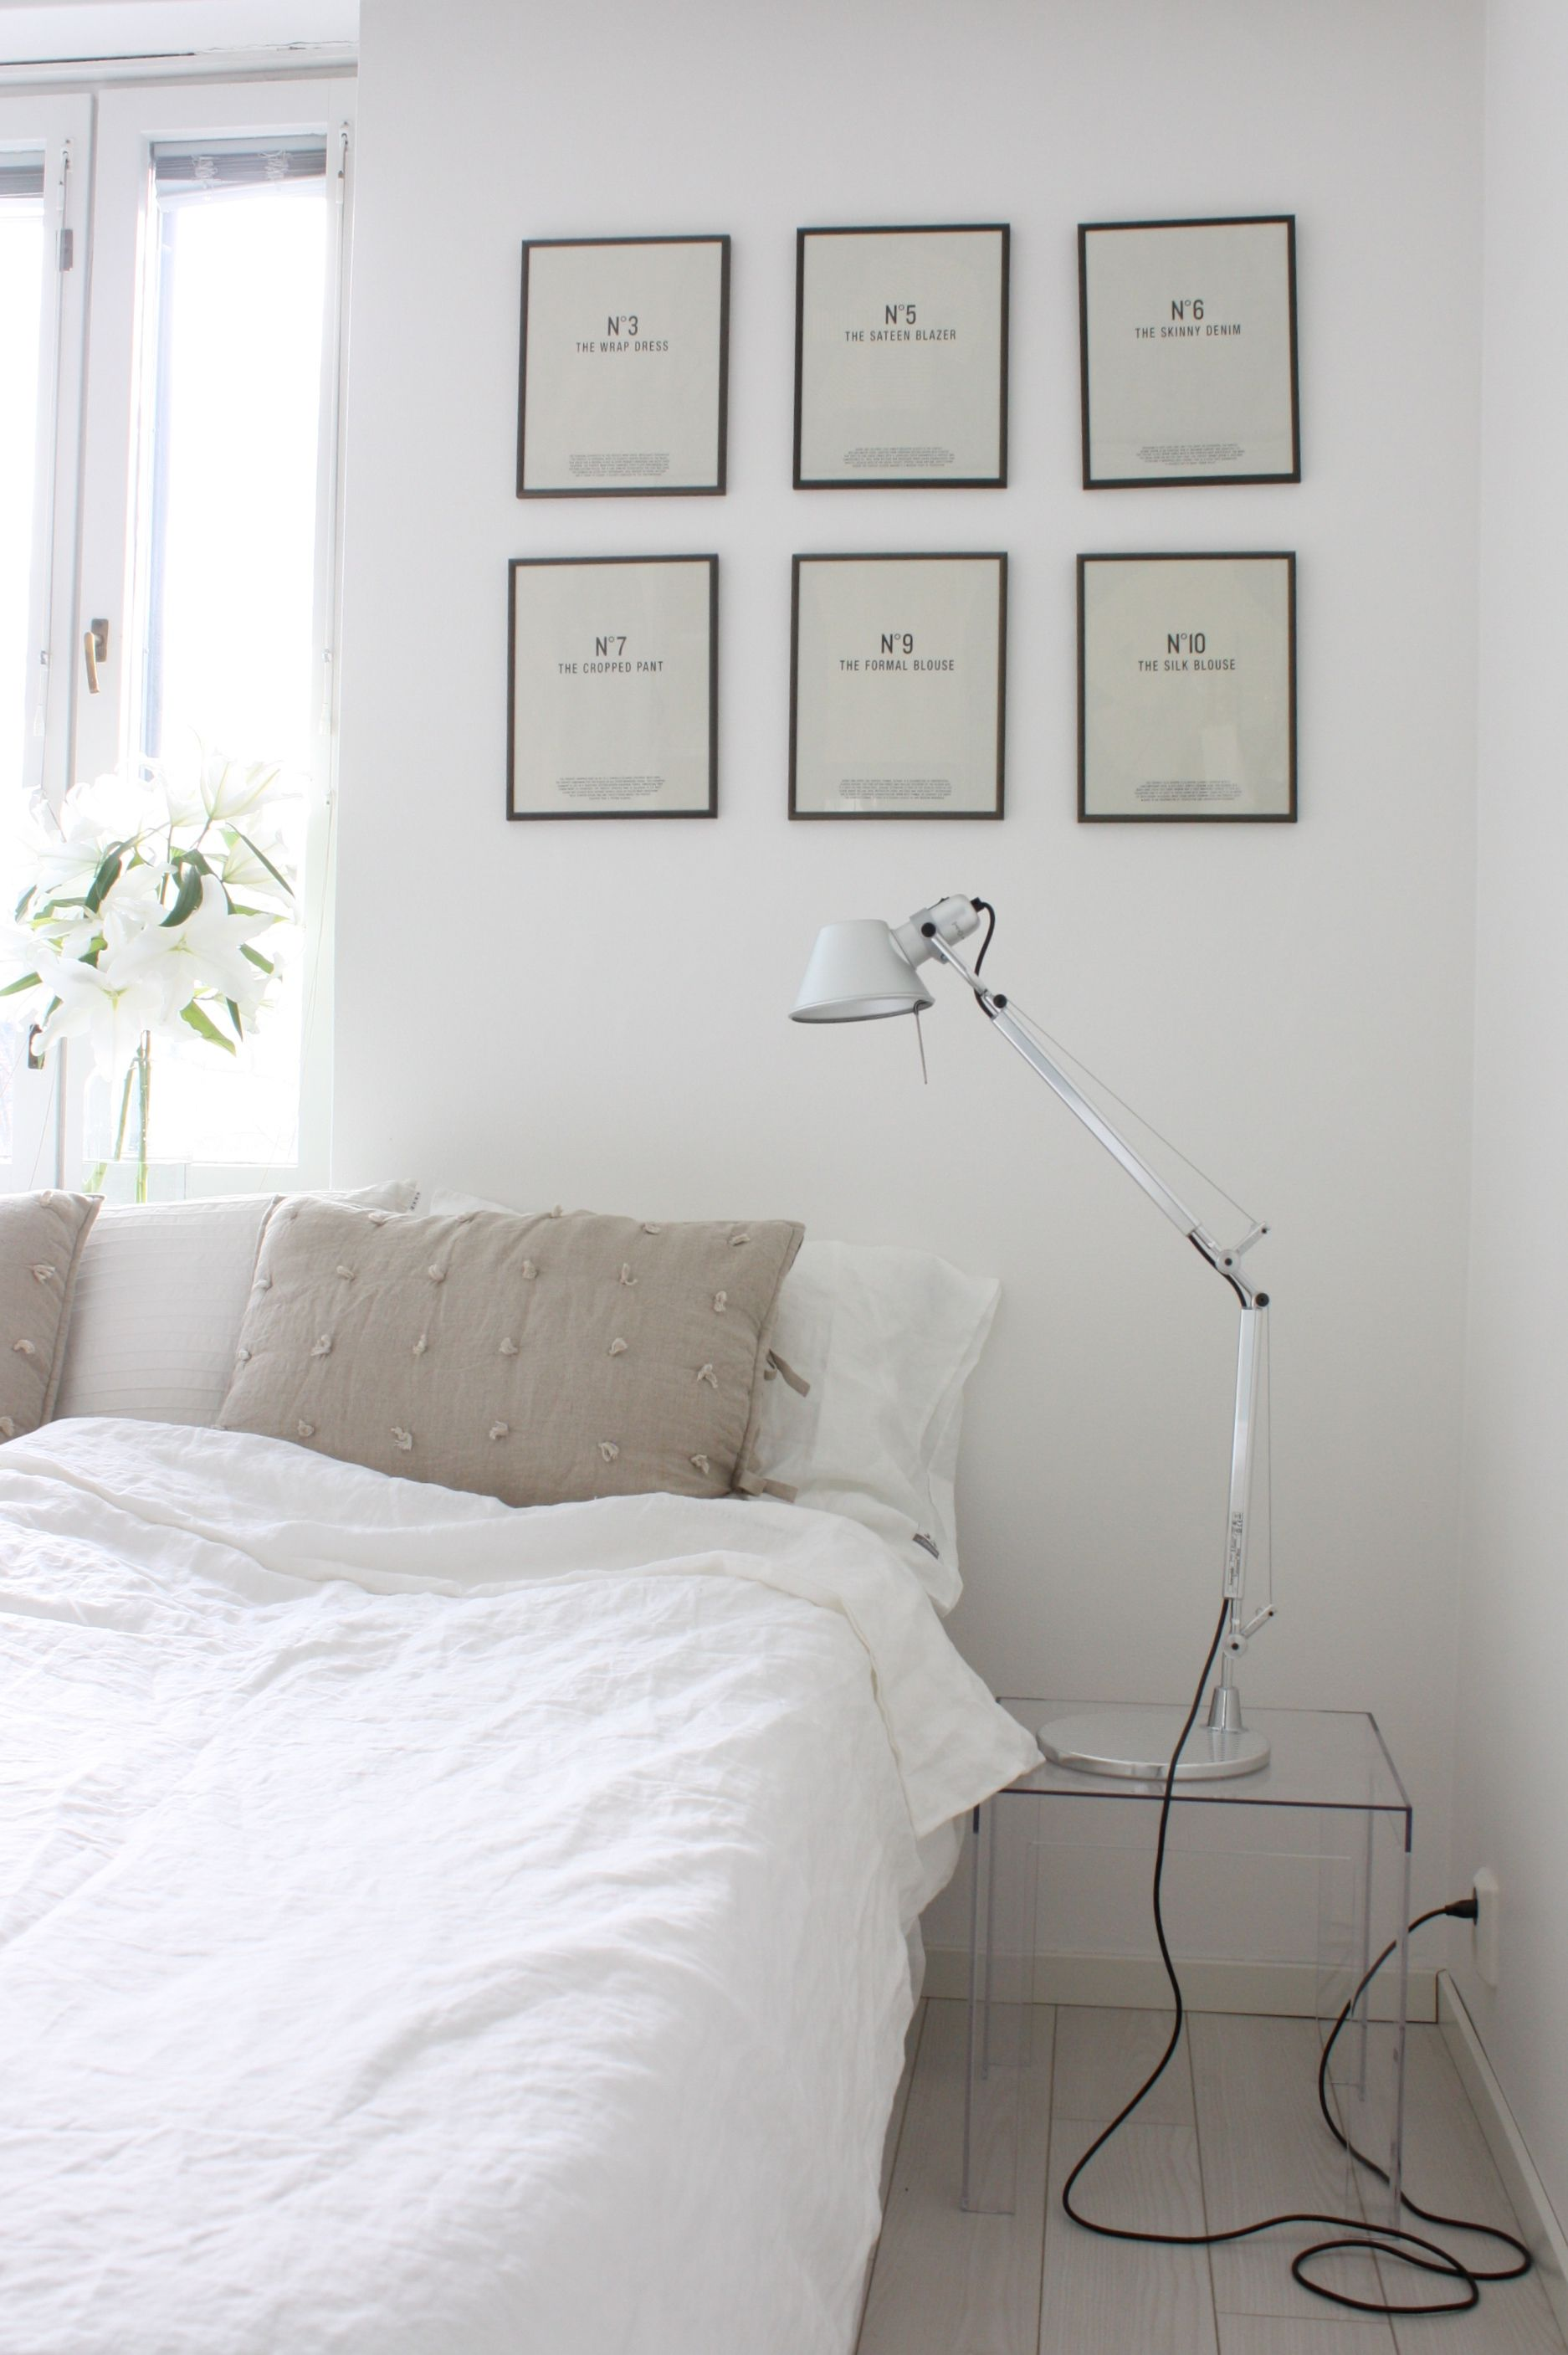 Tolomeo Wall Lamp Bedroom : Homevialaura White bedroom with Artemide Tolomeo lamps, linen sheets, Bemz Loose Fit Urban bed ...